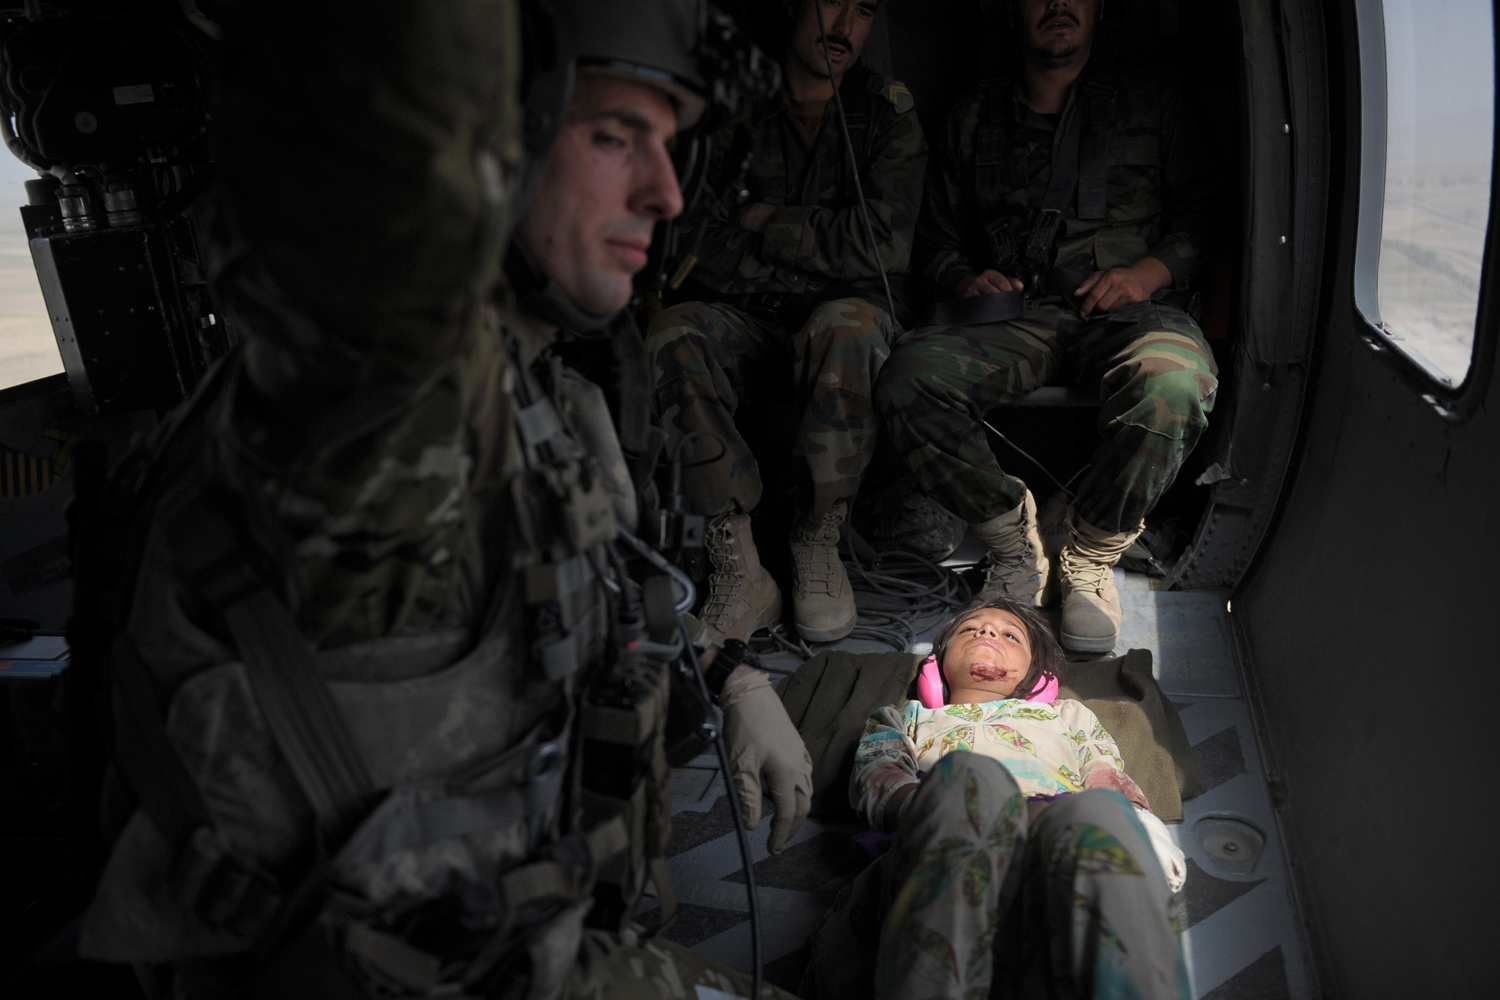 August 21, 2011. Semena (R), a ten-year old wounded Afghan girl, lies in a Medevac helicopter of U.S. Army 159th Brigade Task Force Thunder while being airlifted to a Kandahar hospital.